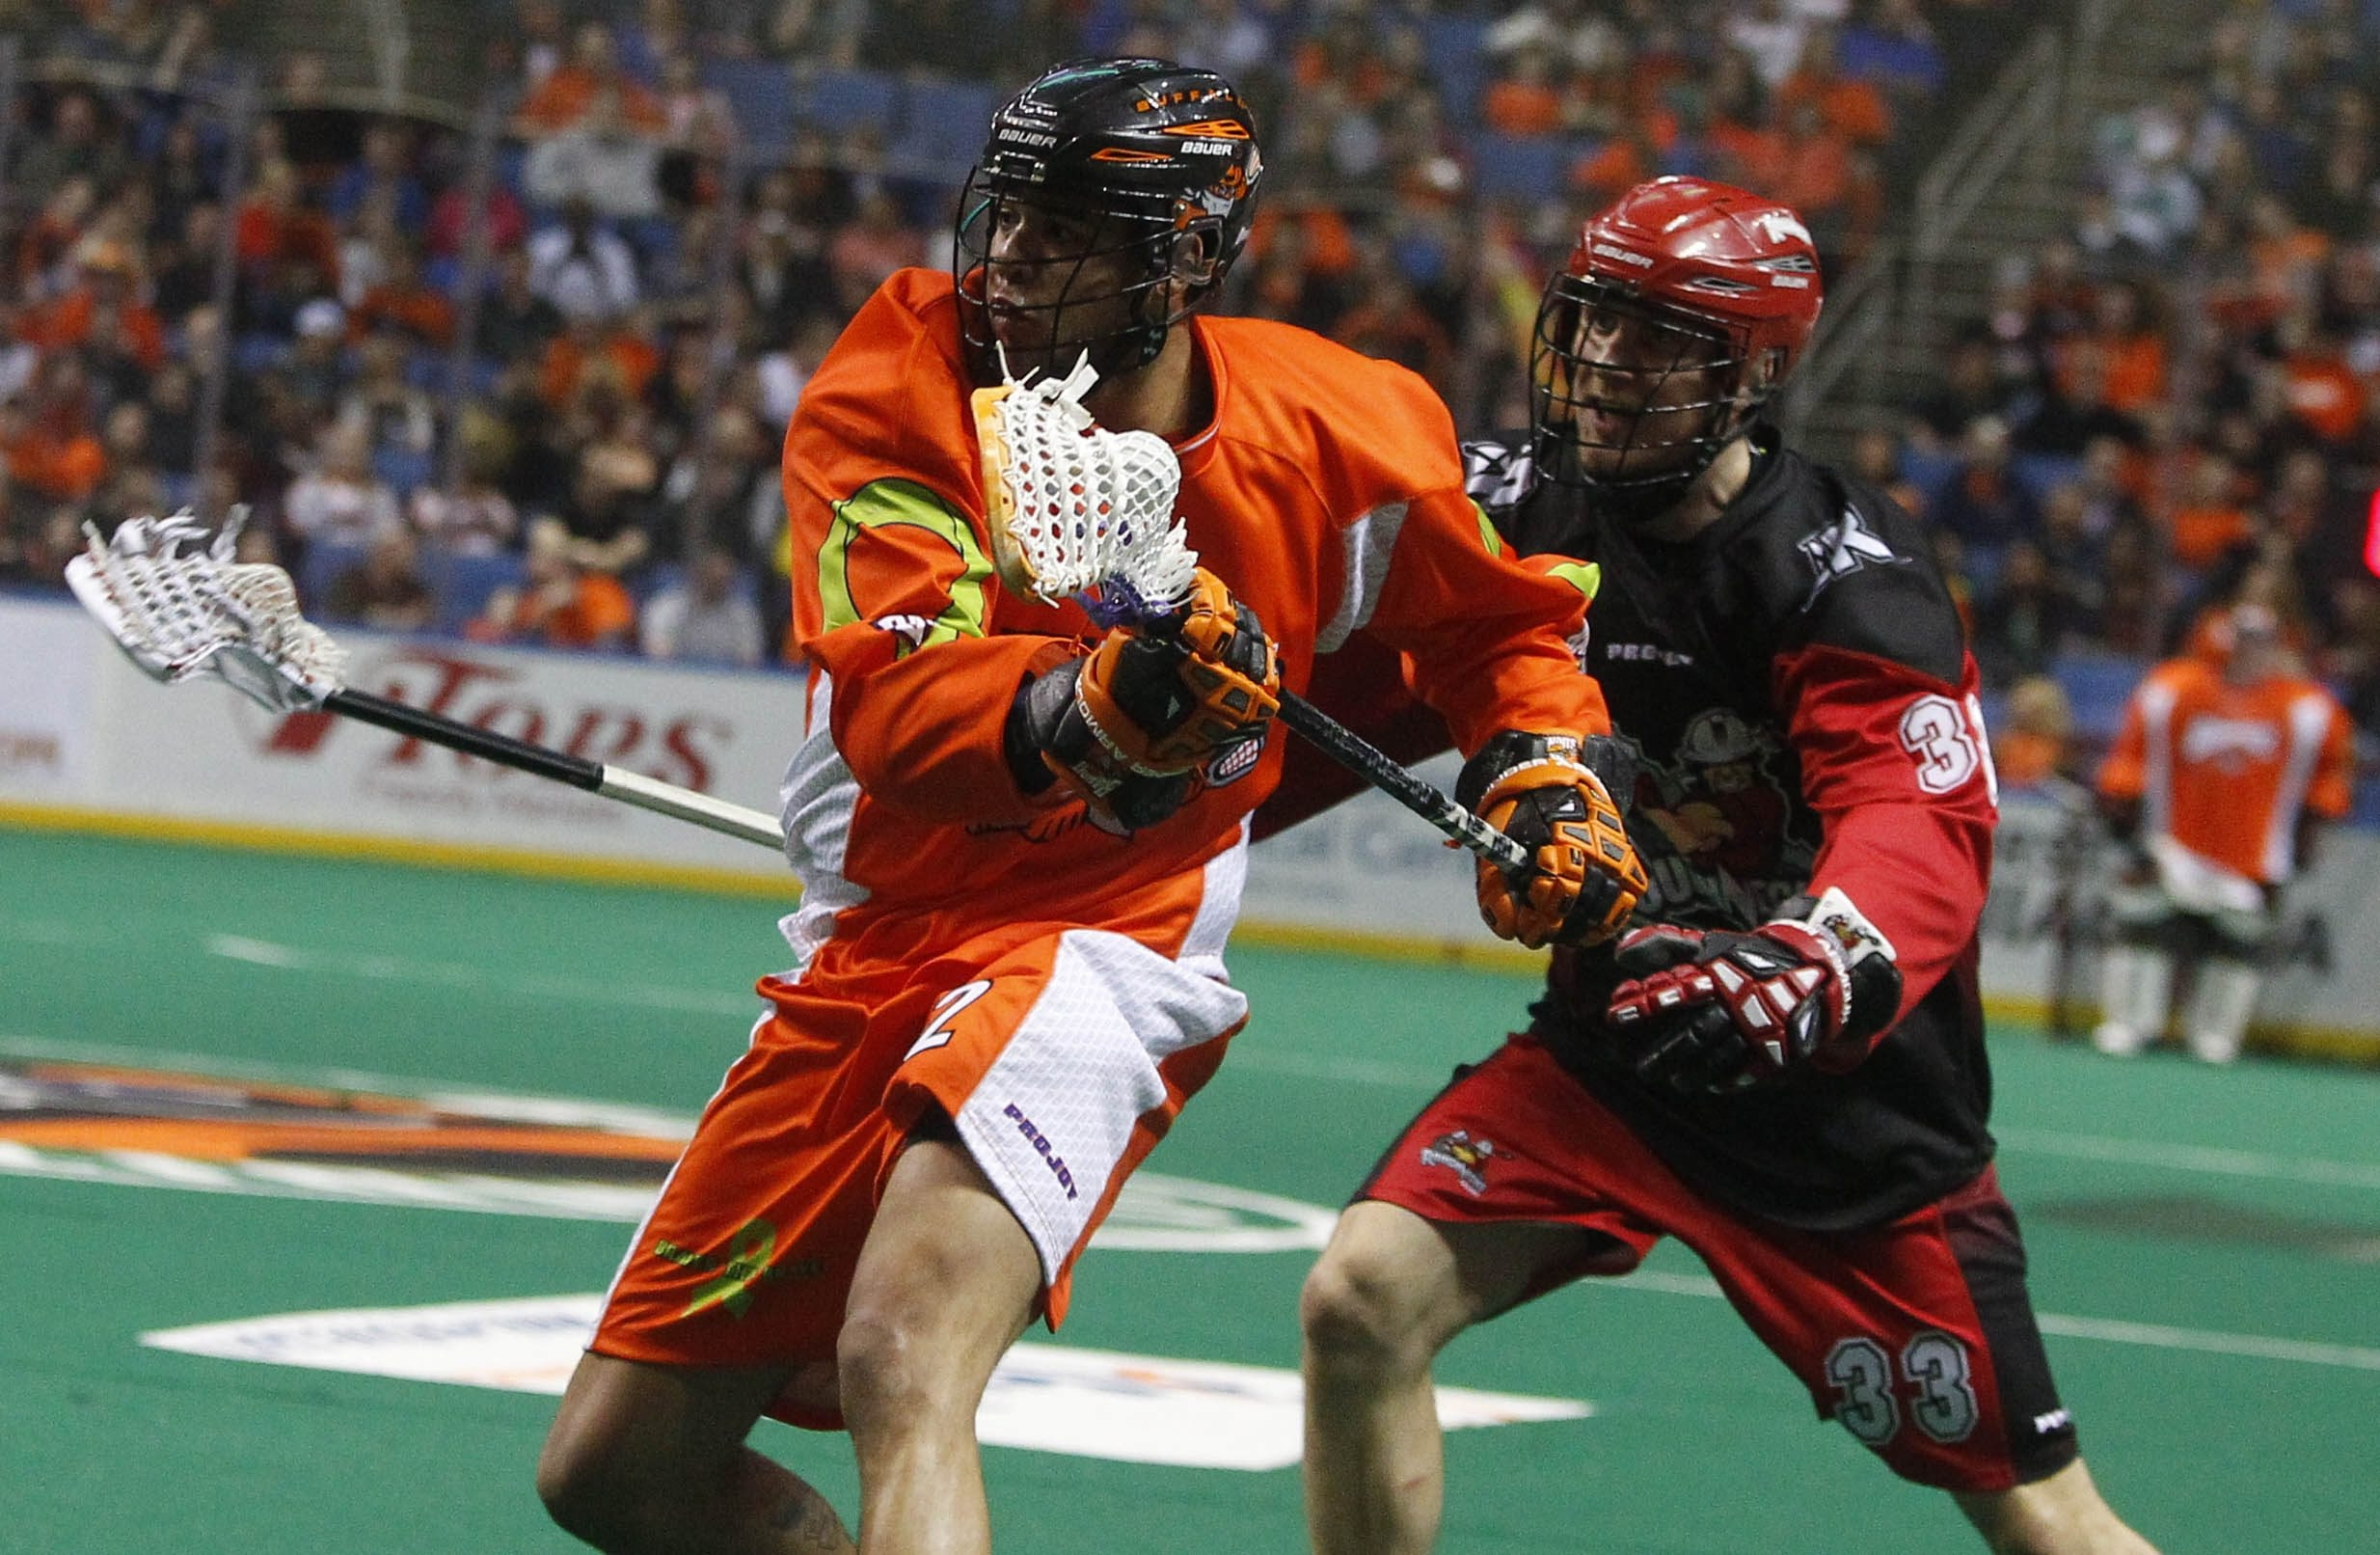 Dhane Smith (92) is once again one of the top point producers for the Bandits.